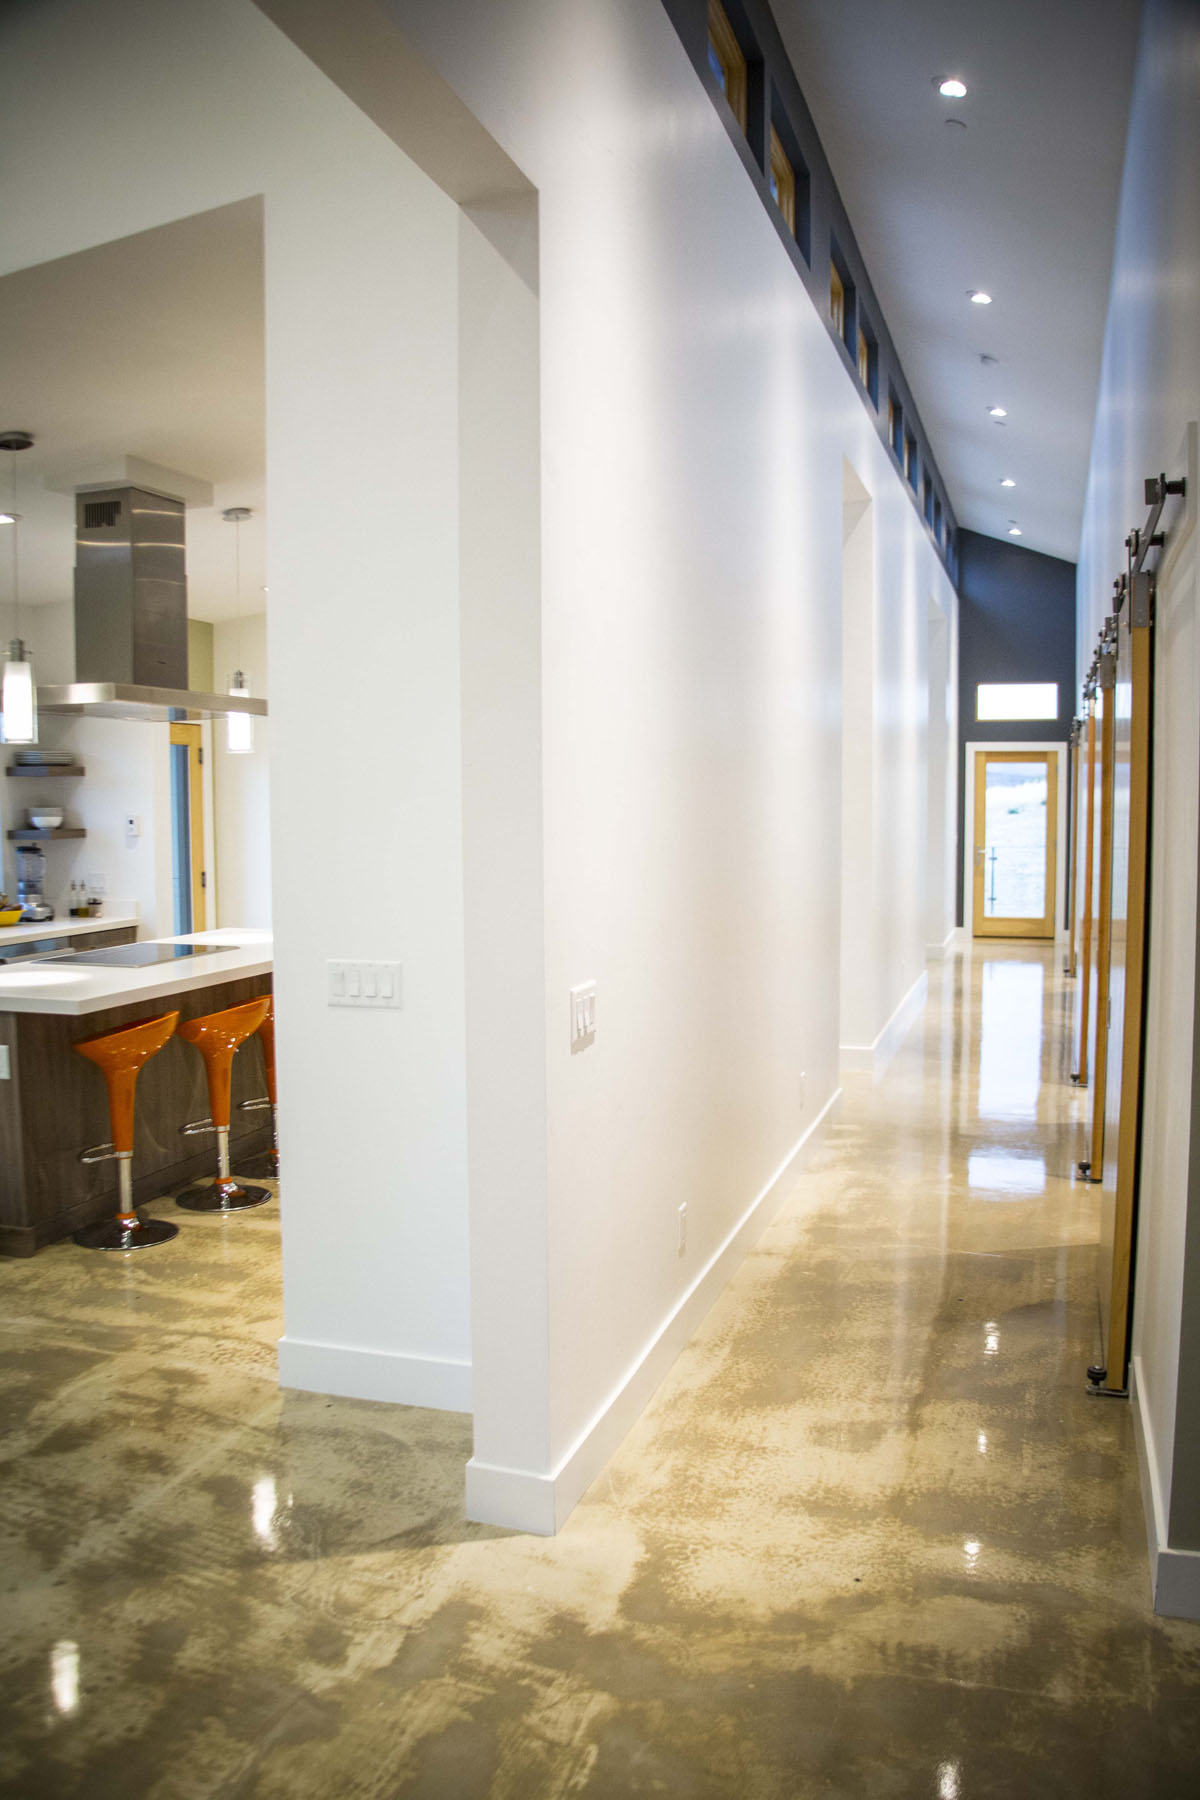 Modern home interior image of hallway on the right and kitchen on the left with orange stools at the kitchen island.